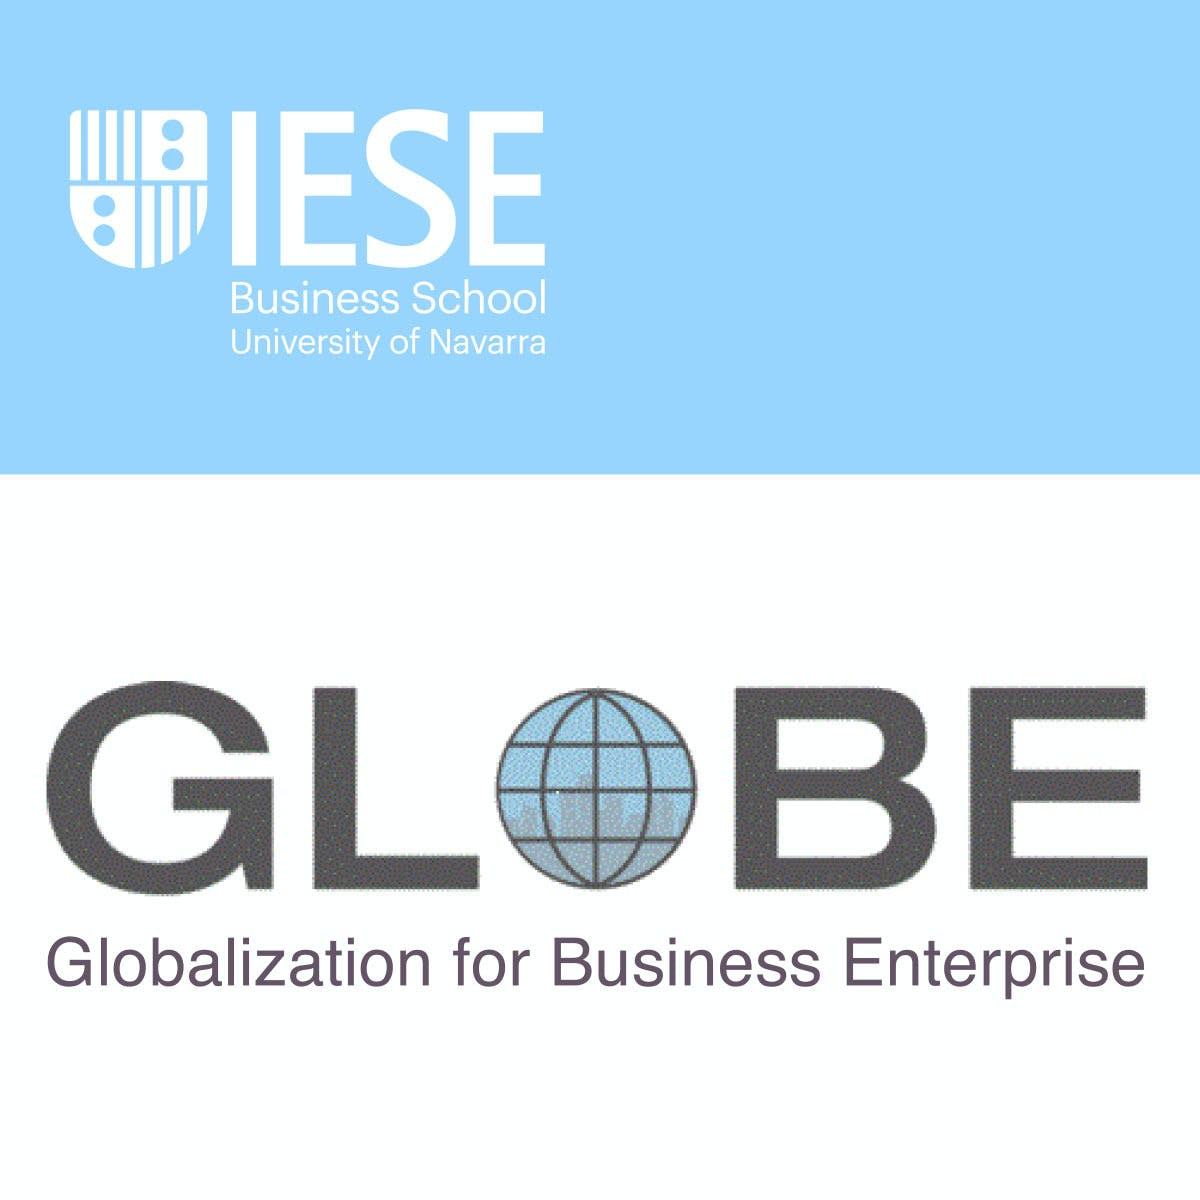 Globalization of Business Enterprise